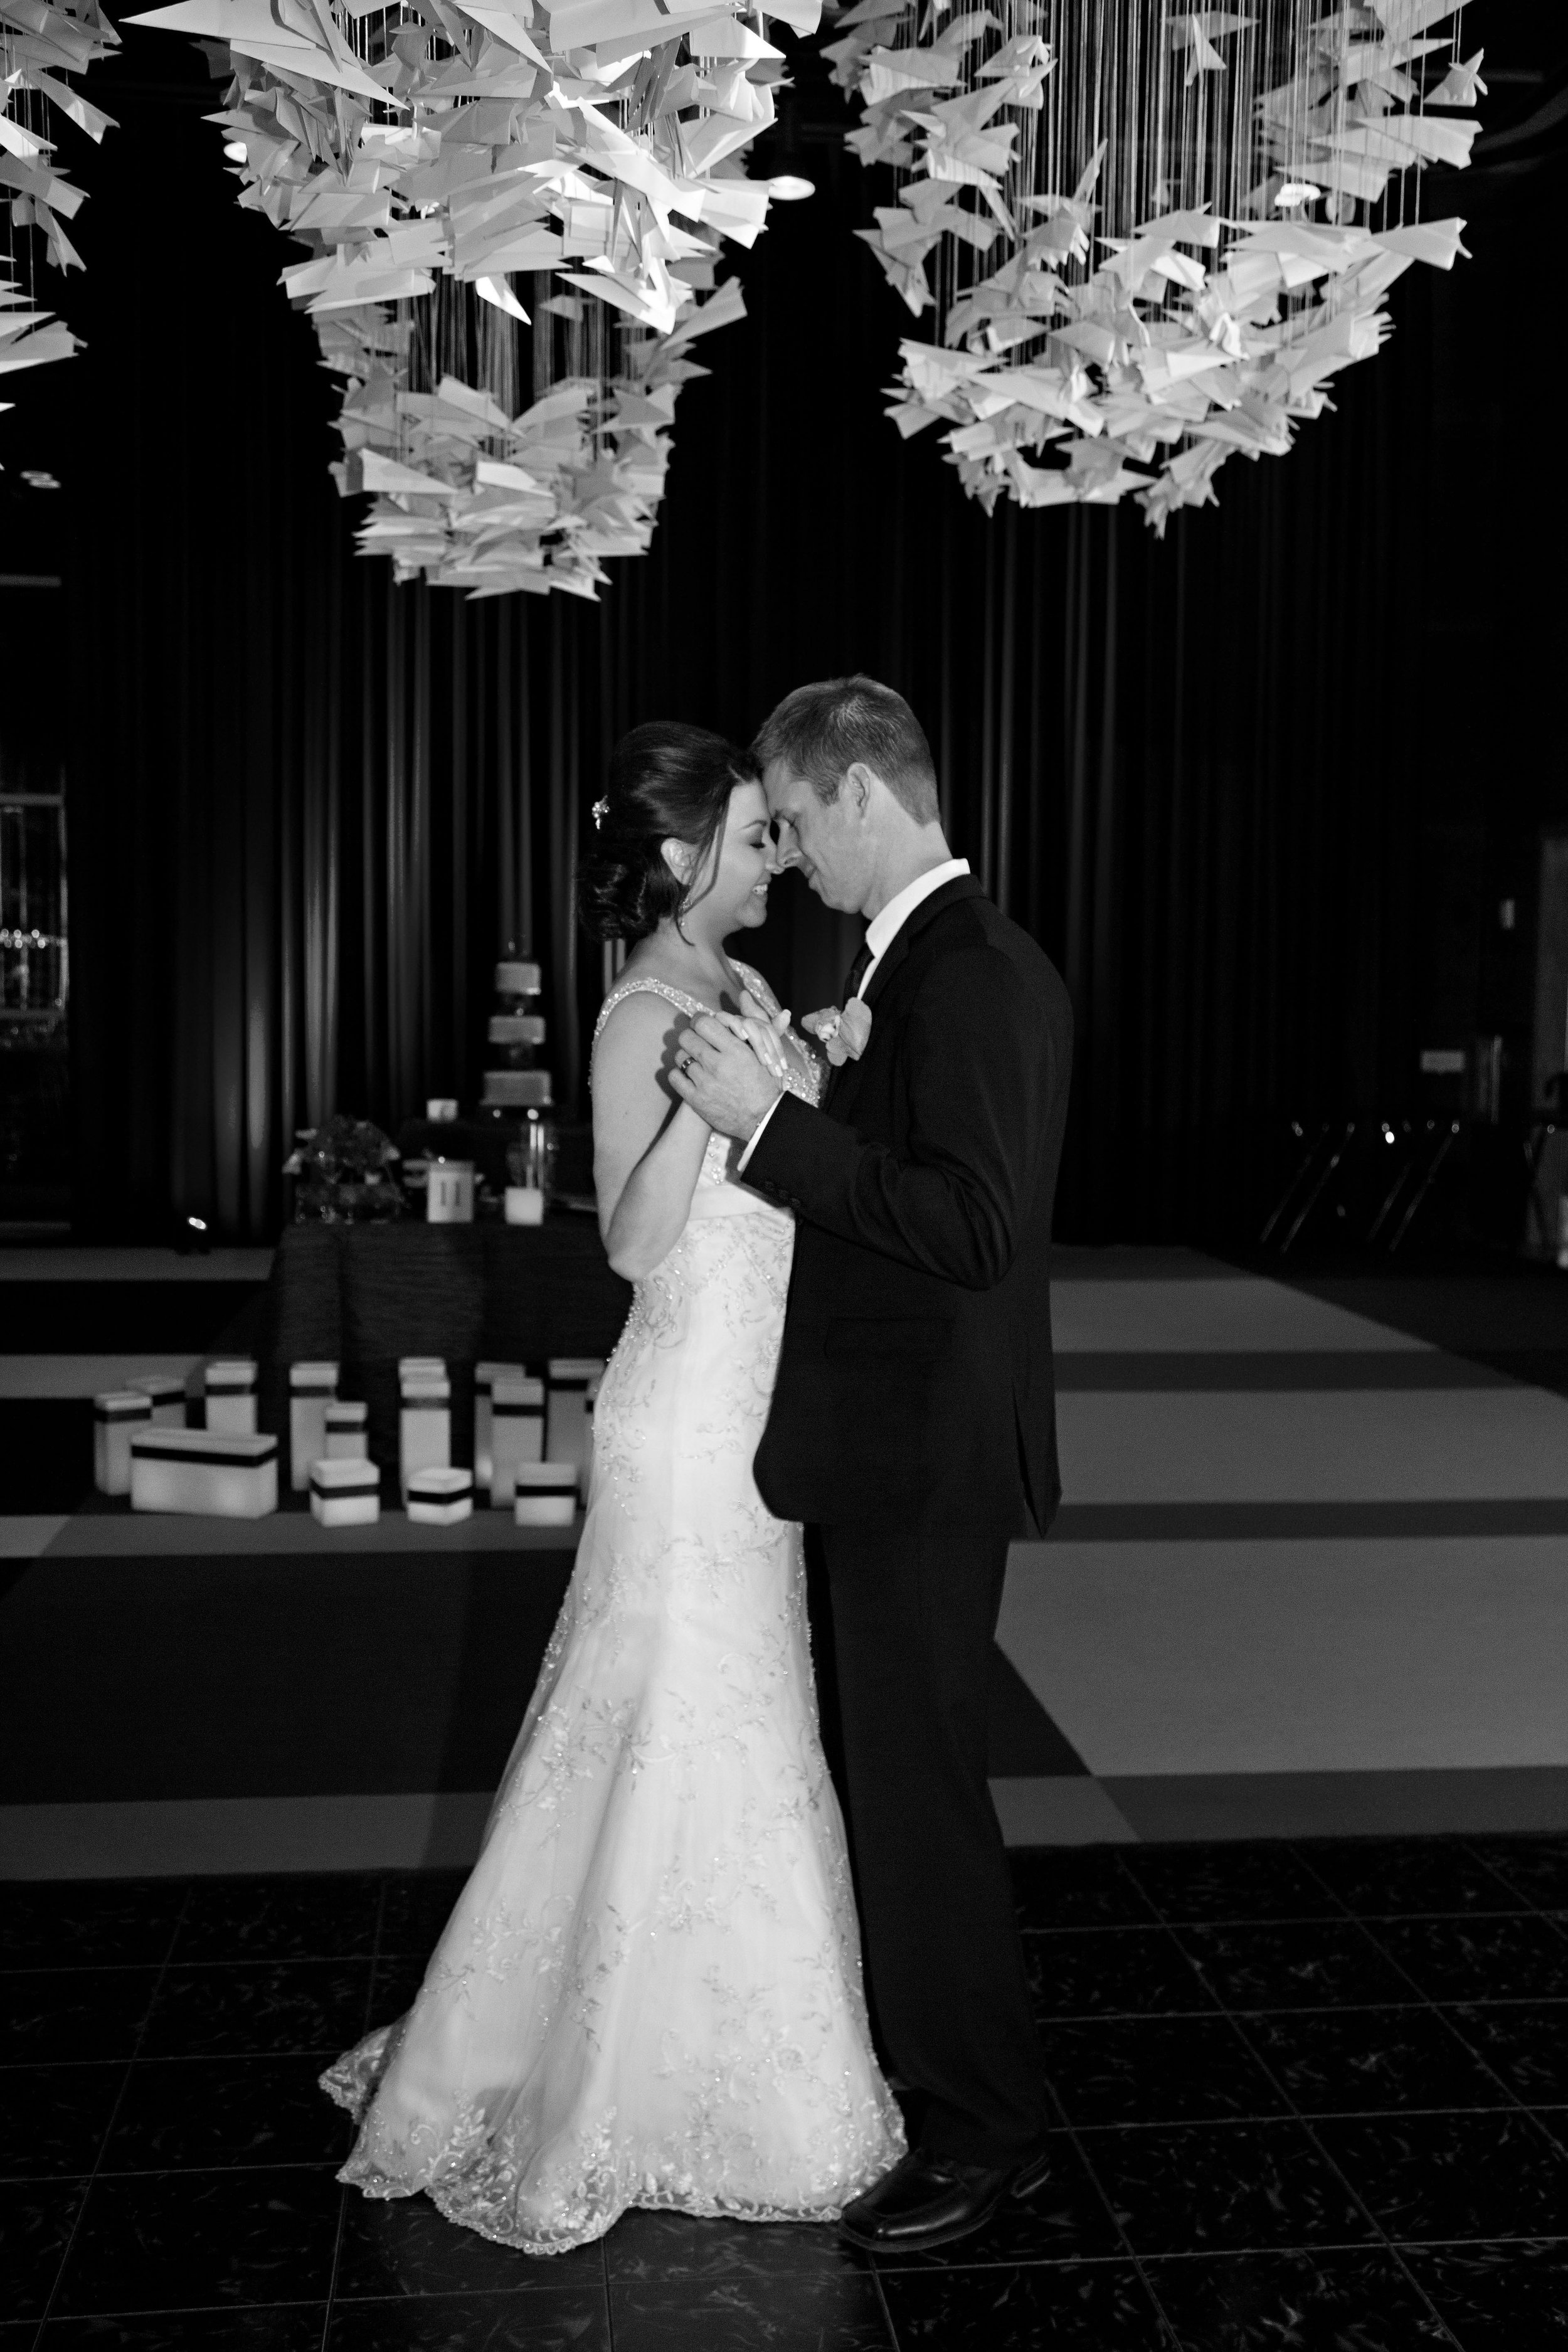 21 bride and groom first dance unique paper bird decor O Grace Photography Life Design Events.jpg